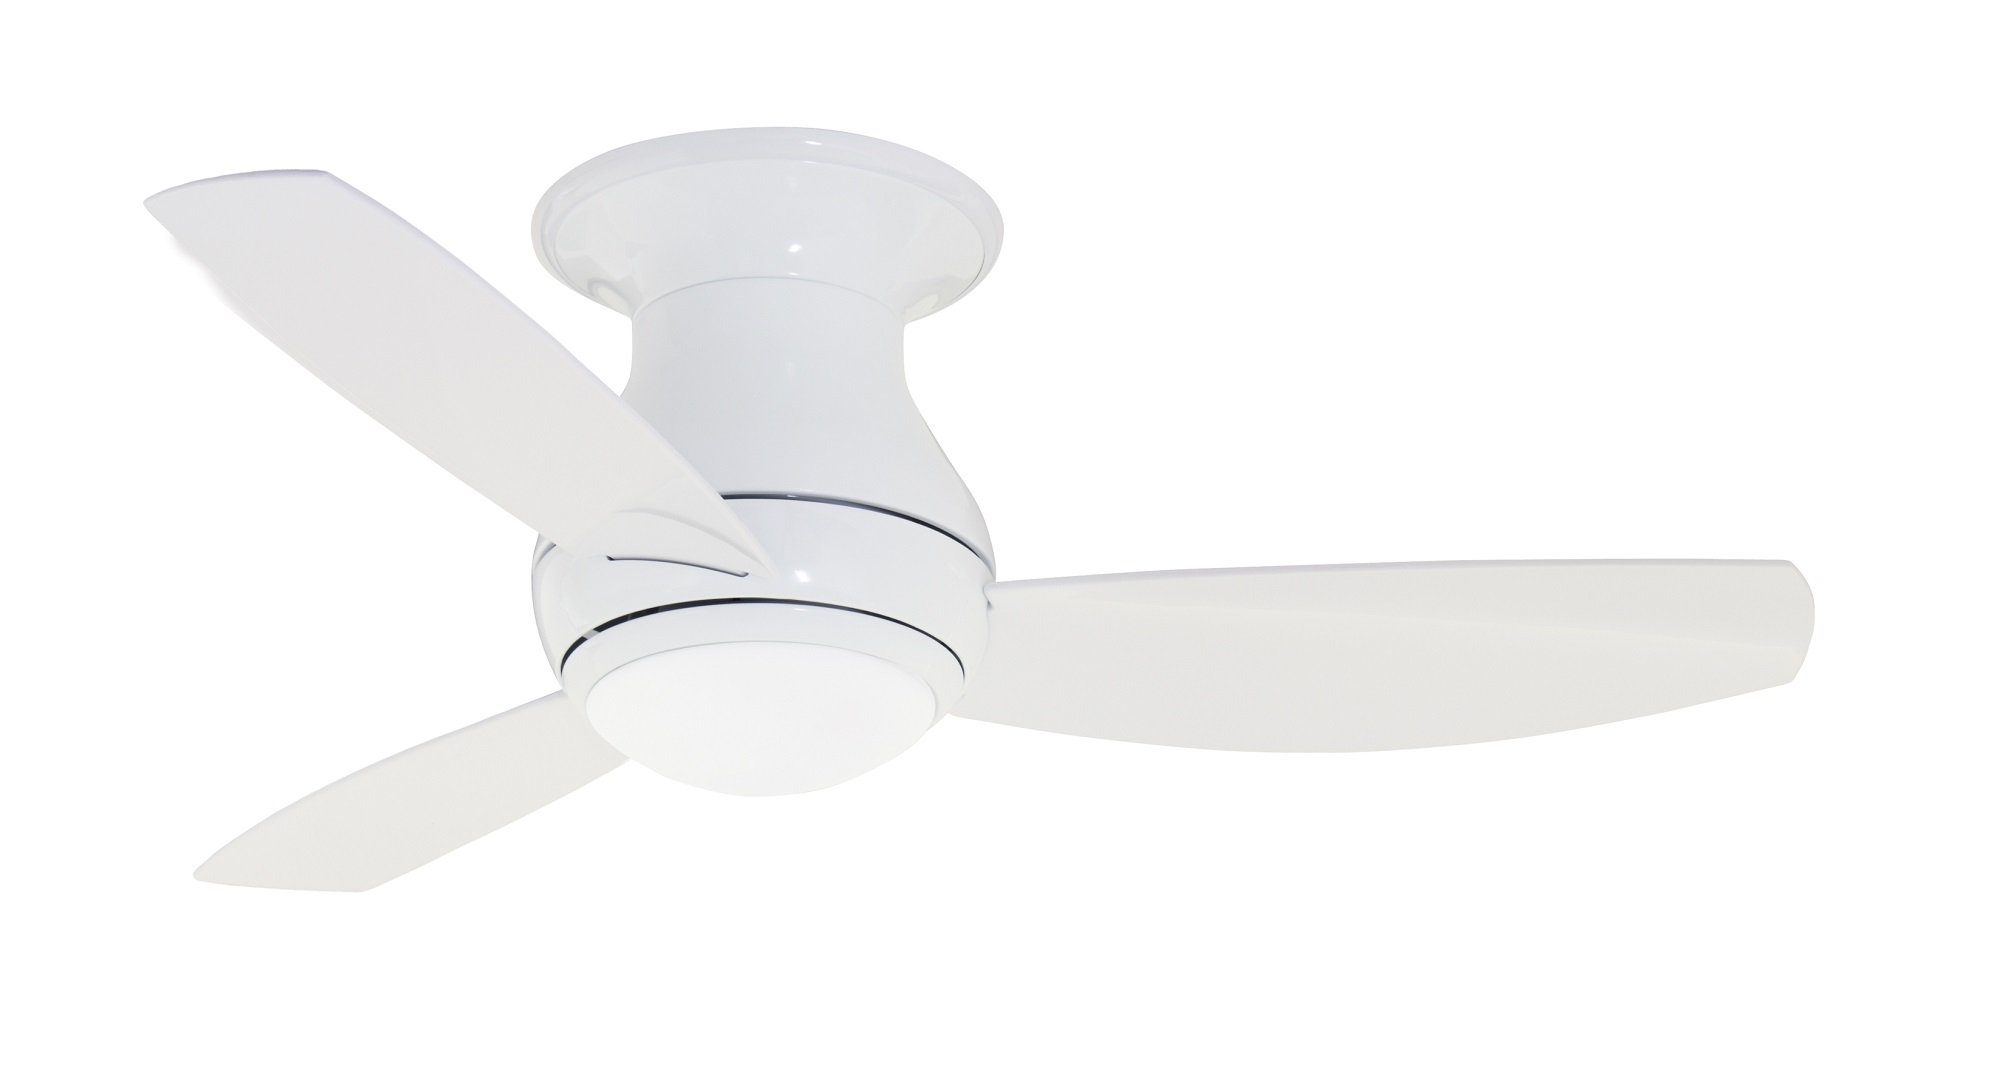 Emerson Ceiling Fans CF144WW, Curva Sky, Modern Low Profile Hugger, Indoor Outdoor Ceiling Fan With Light And Remote, 44-Inch Blades, Appliance White Finish by Emerson